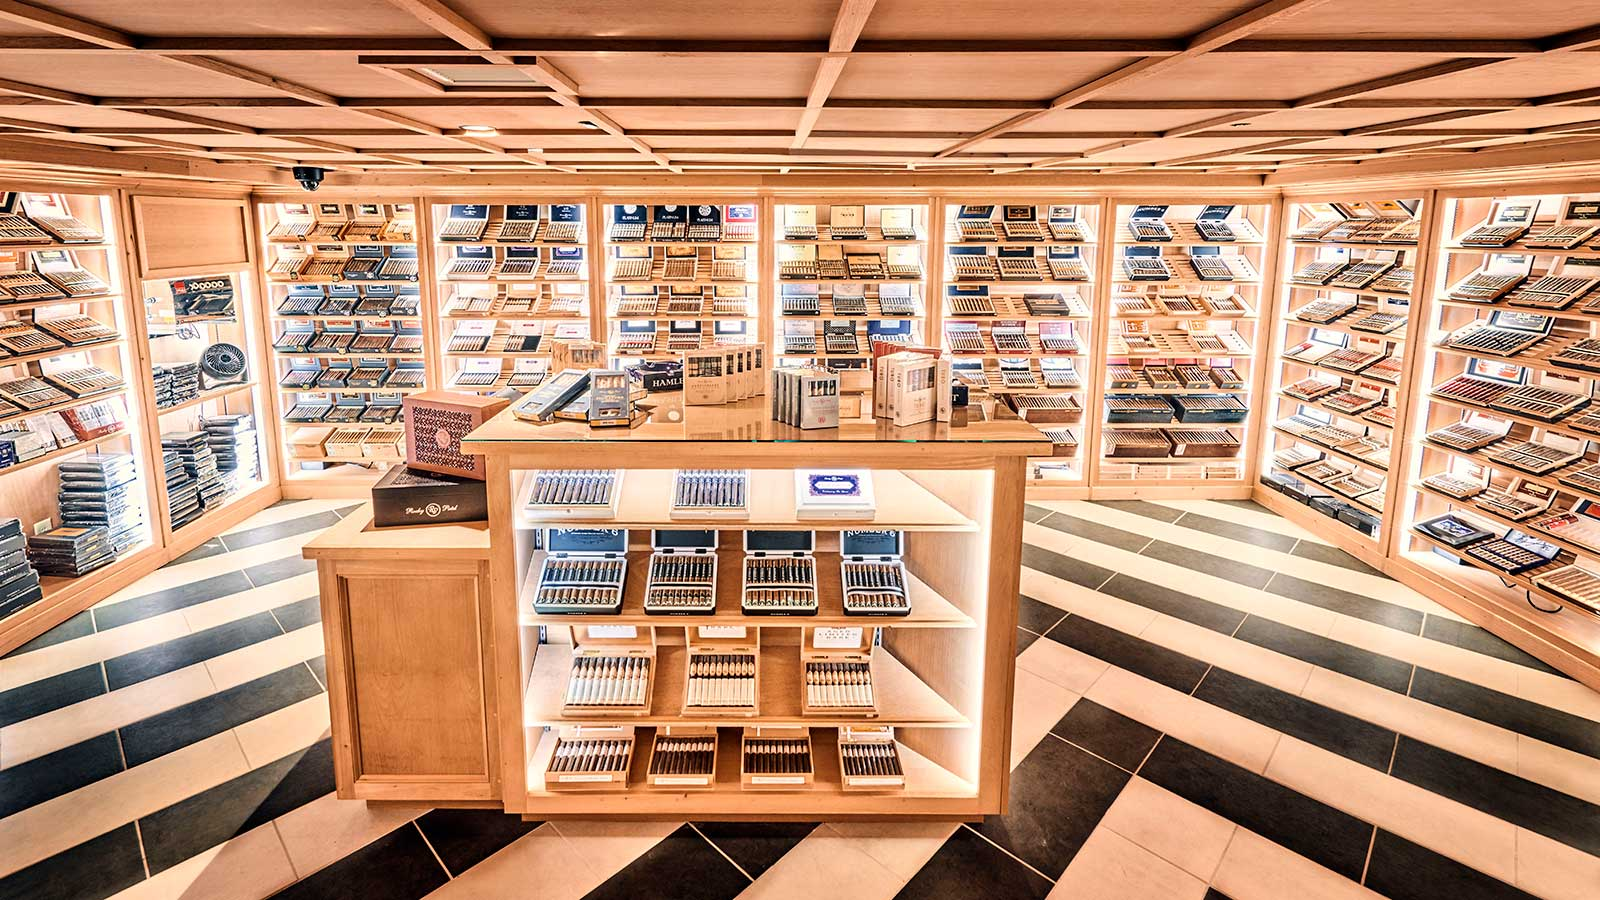 The walk-in humidor is stocked with the full collection of Rocky Patel cigars. Other big name brands in the humidor include Arturo Fuente, Ashton, Padrón and My Father.